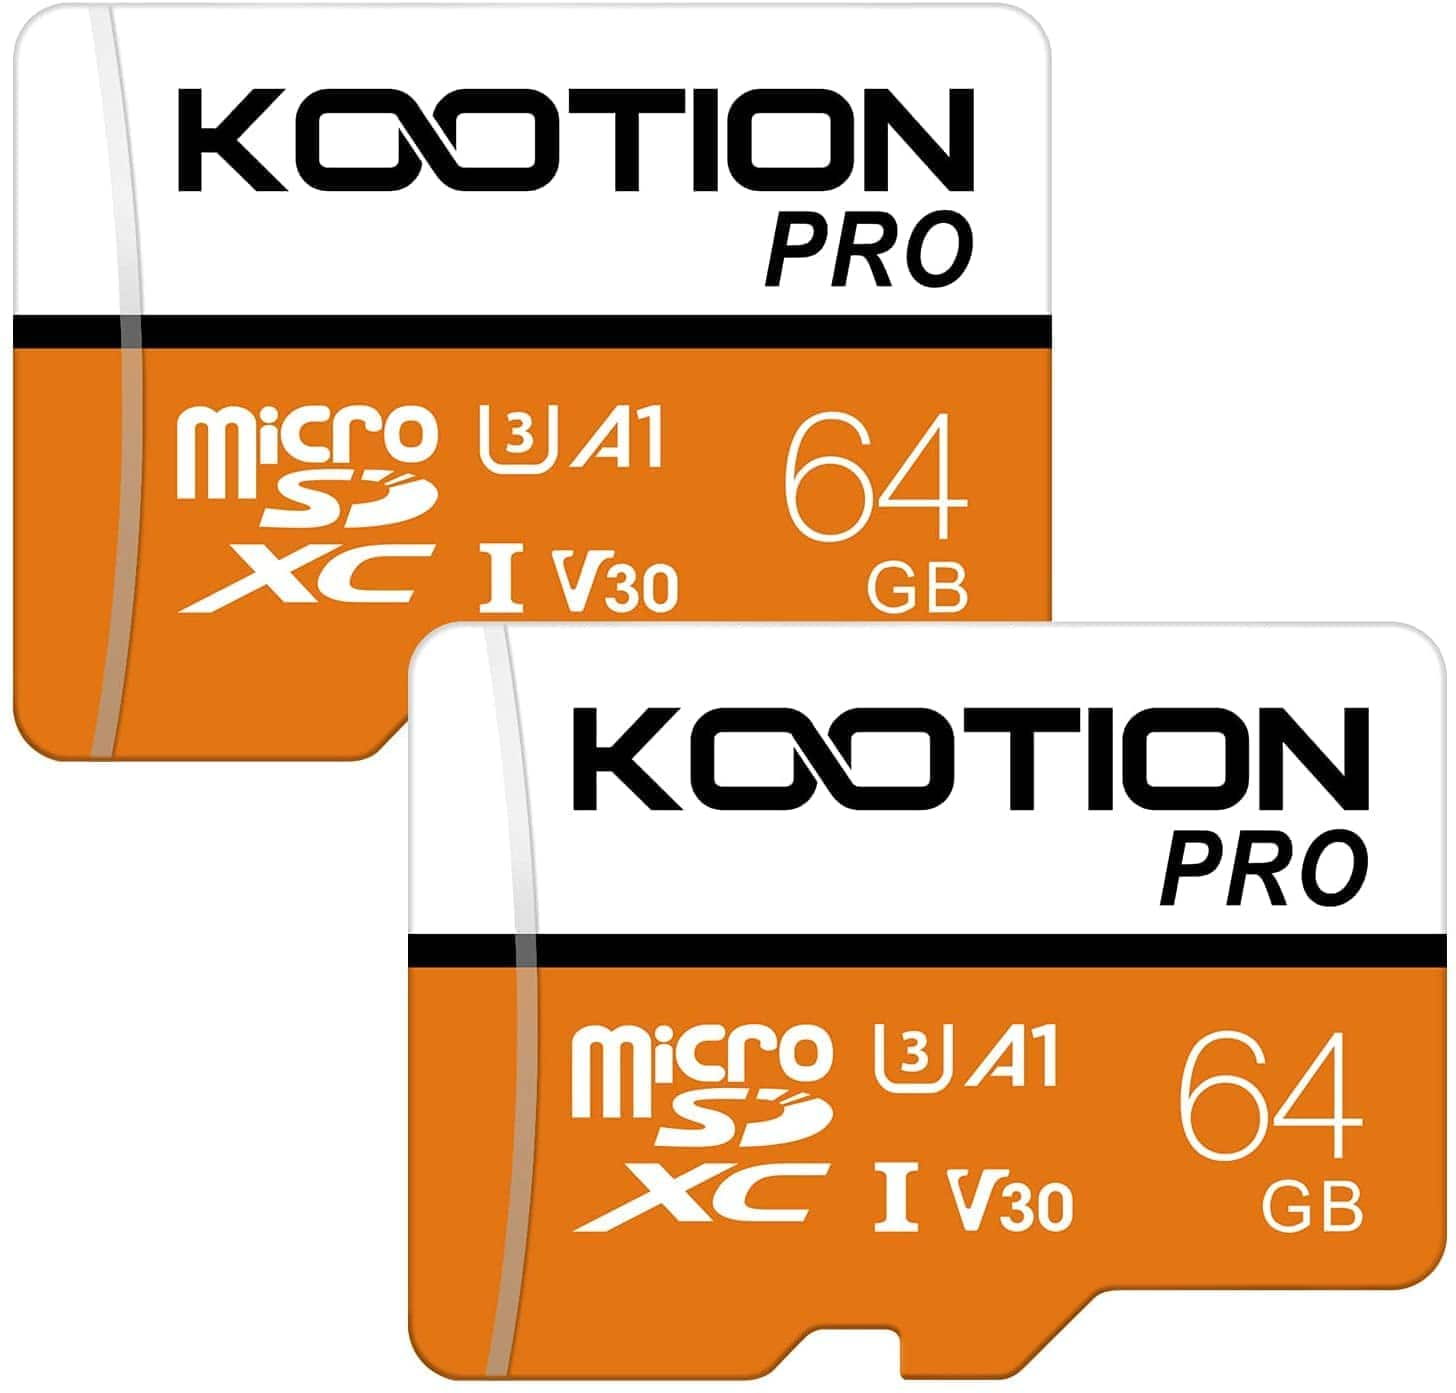 KOOTION 2-Pack 64GB Micro SD Memory Card U3 A1 V30 High Speed TF Card - $12.59 + FS w/ Prime or Orders $25+